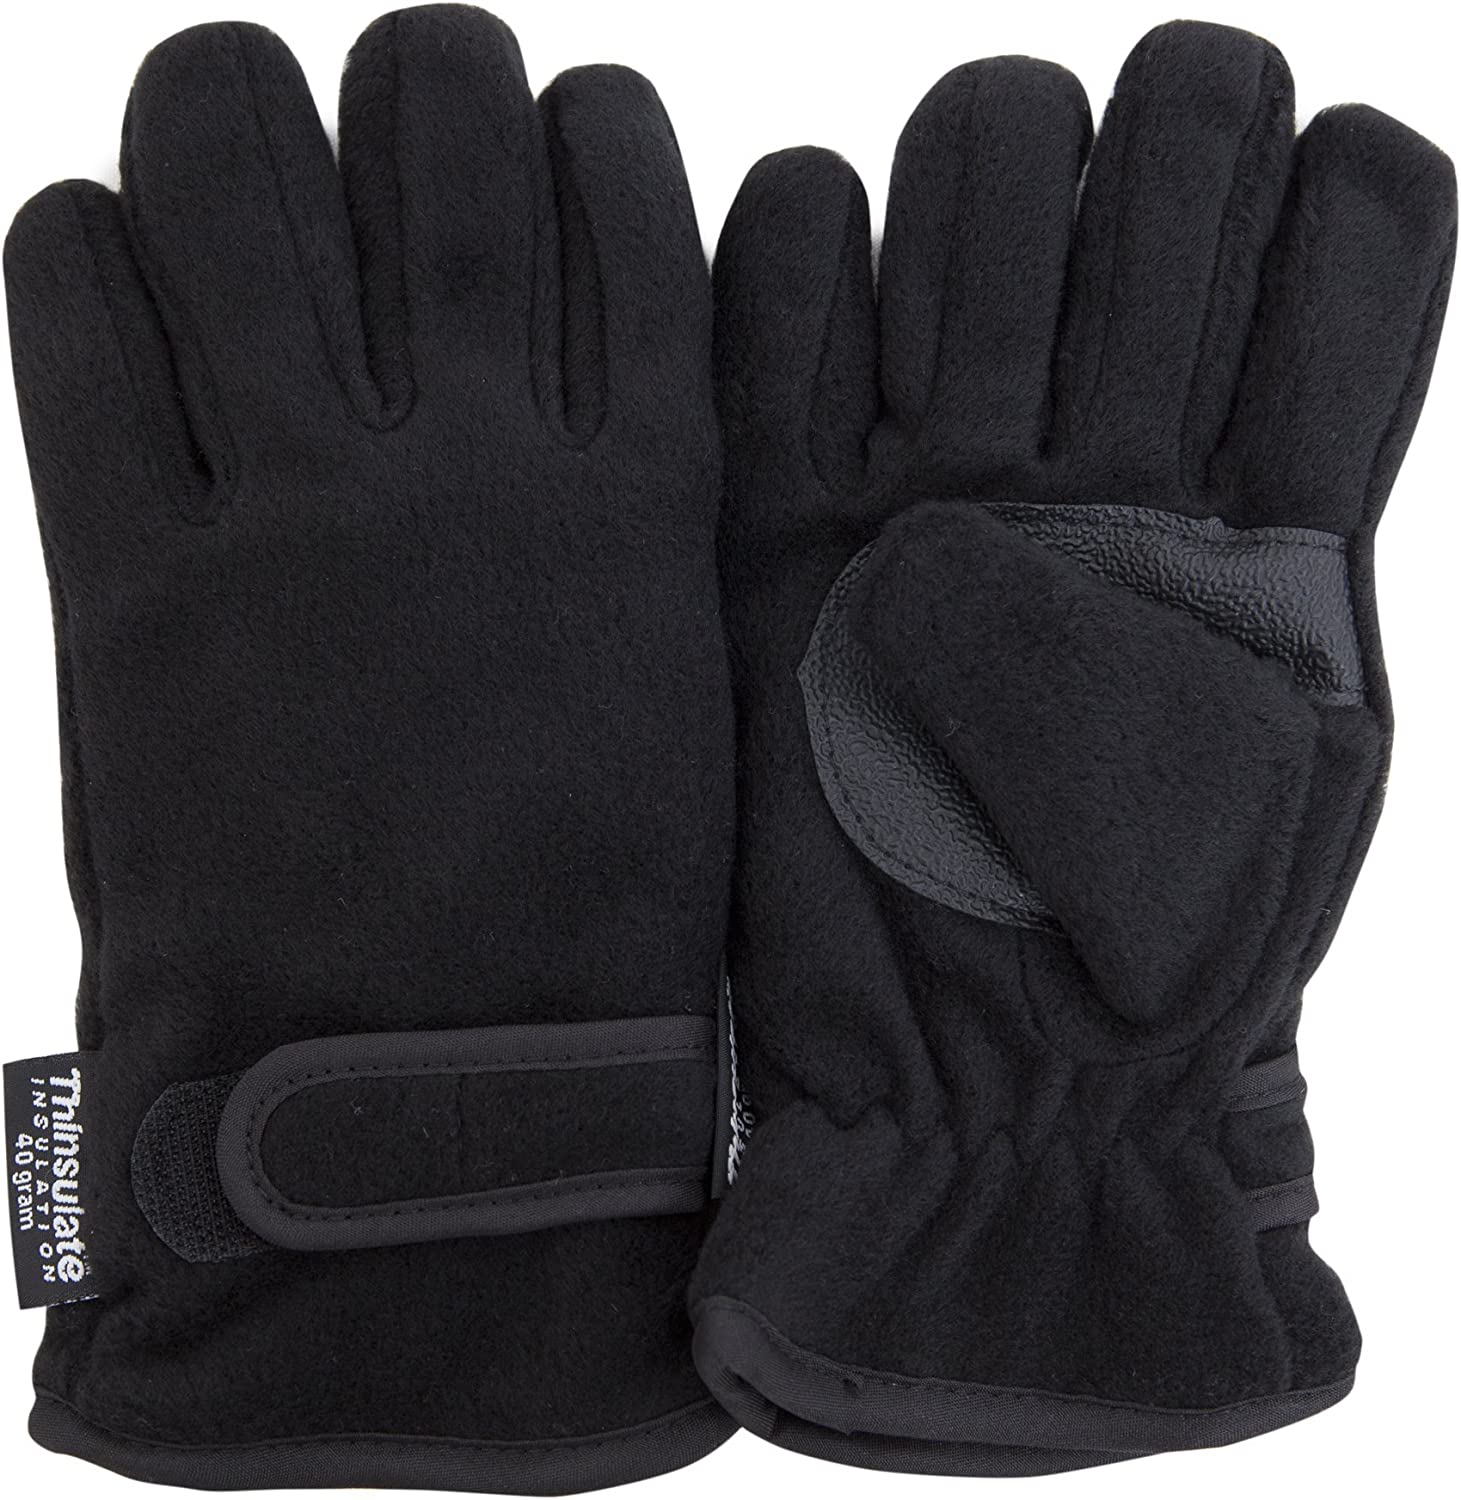 Kids Fleece 40gram Thinsulate Lined Winter Thermal Gloves with Palm Grip